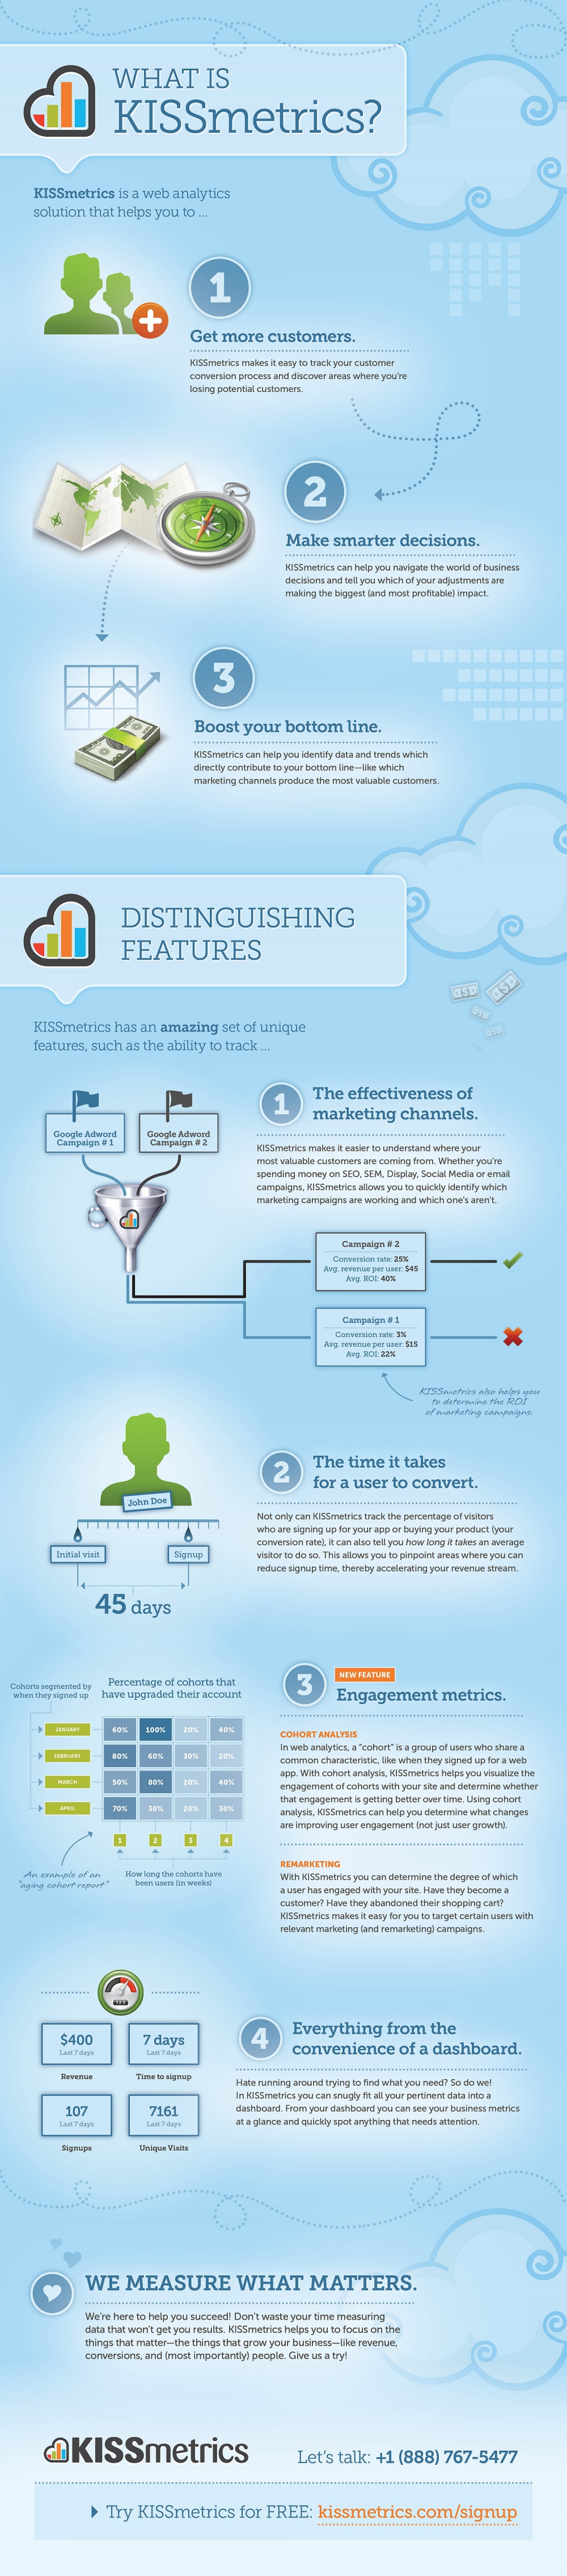 What is KISSmetrics? Infographic